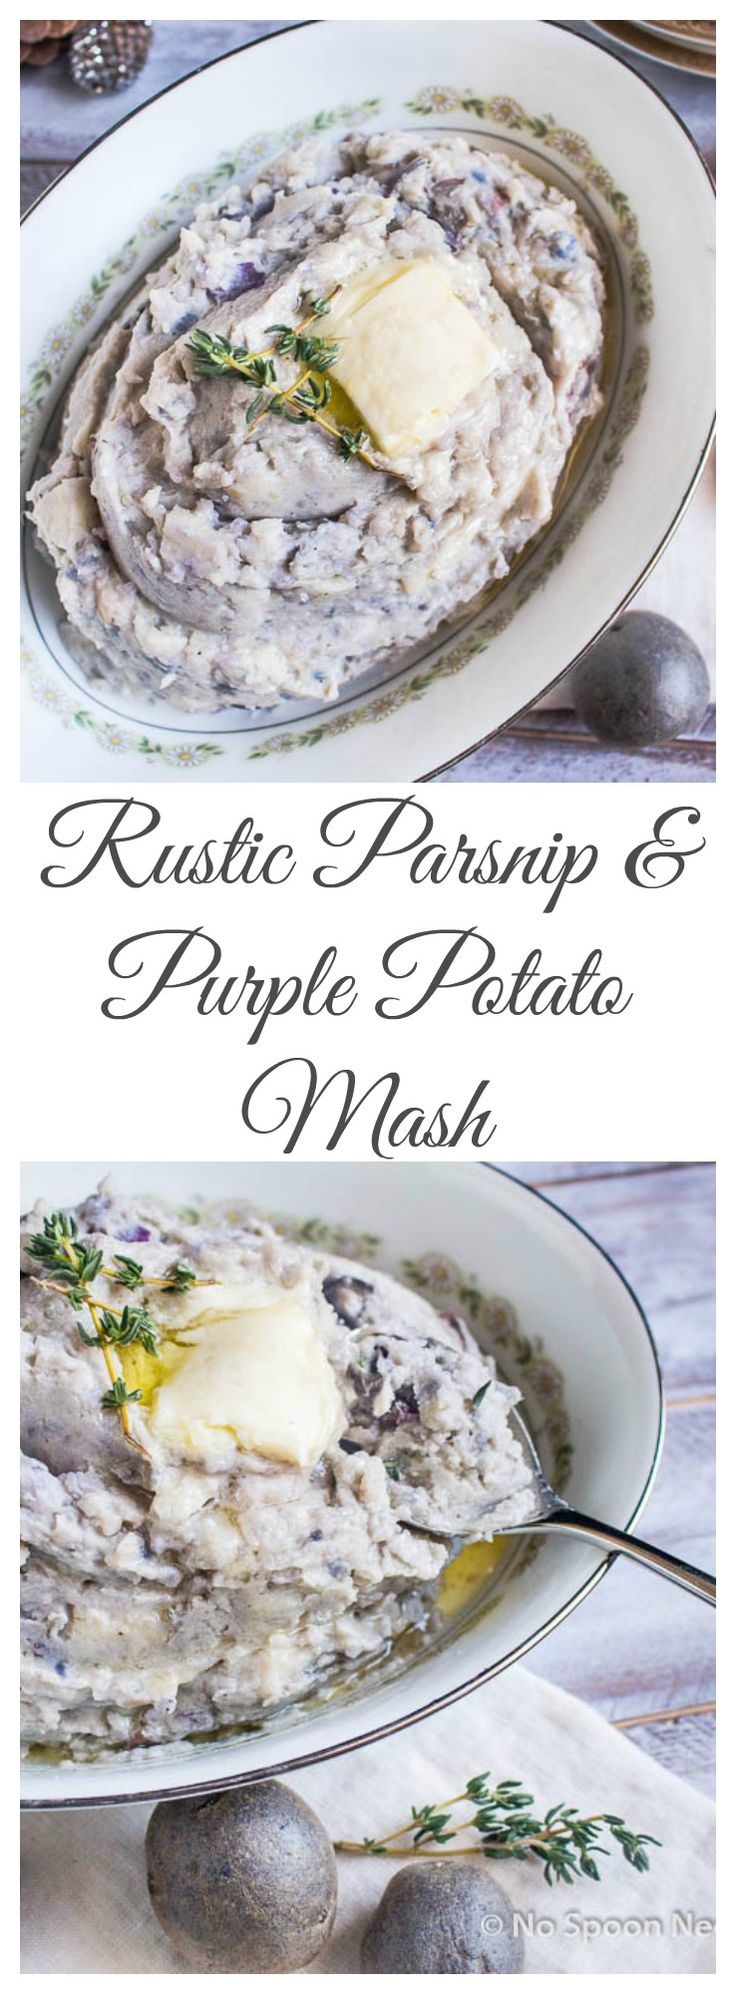 Rustic Parsnip & Purple Potato Mash - Add Something Uniquely Delicious to Your Holiday Table!